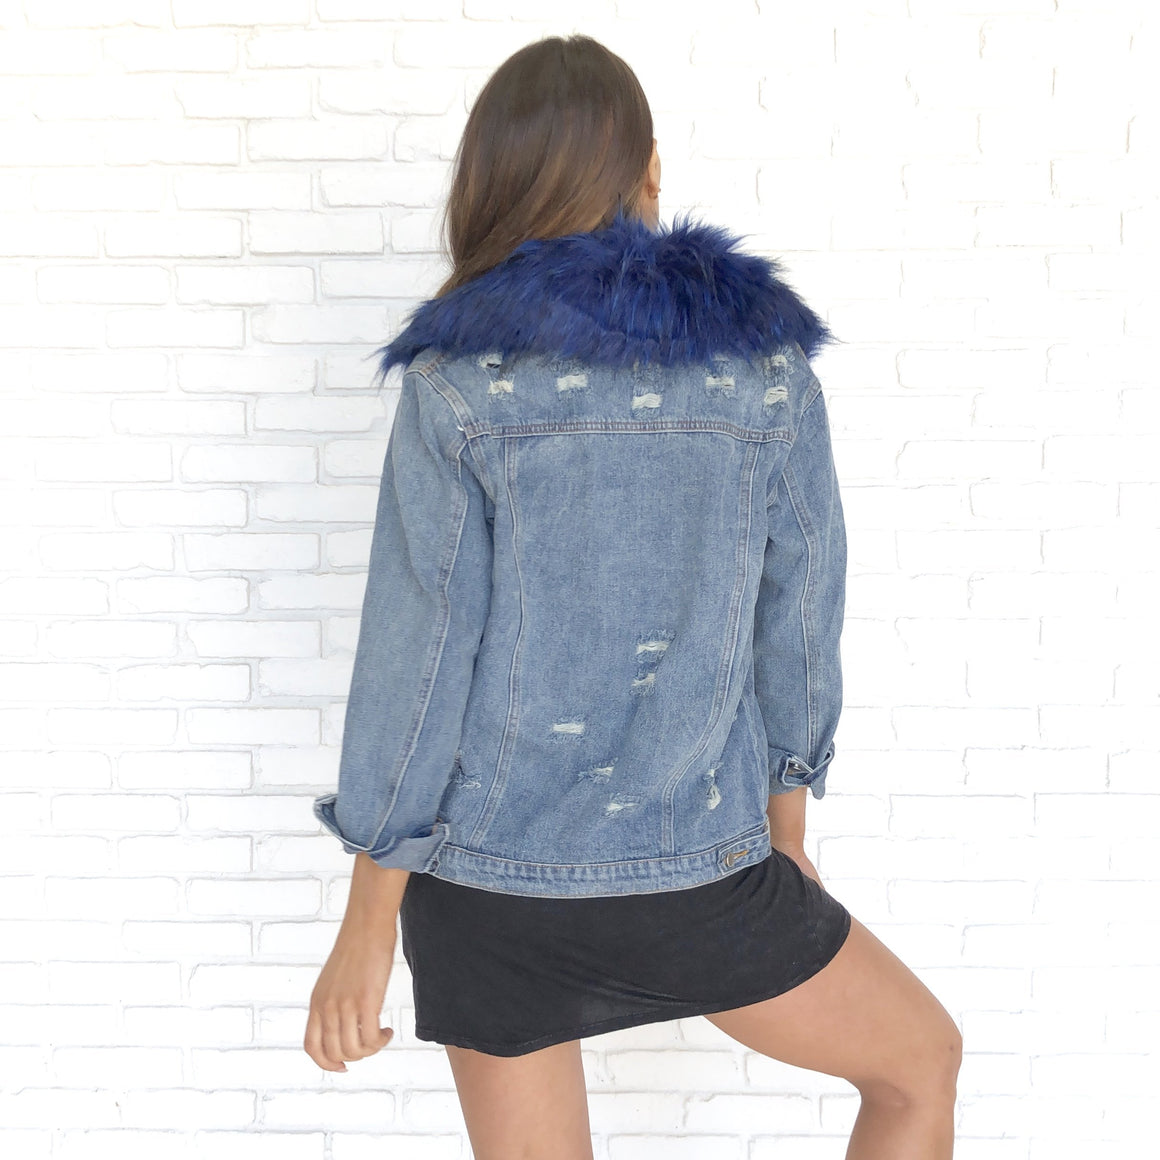 What the Fur Distressed Denim Jacket In Blue